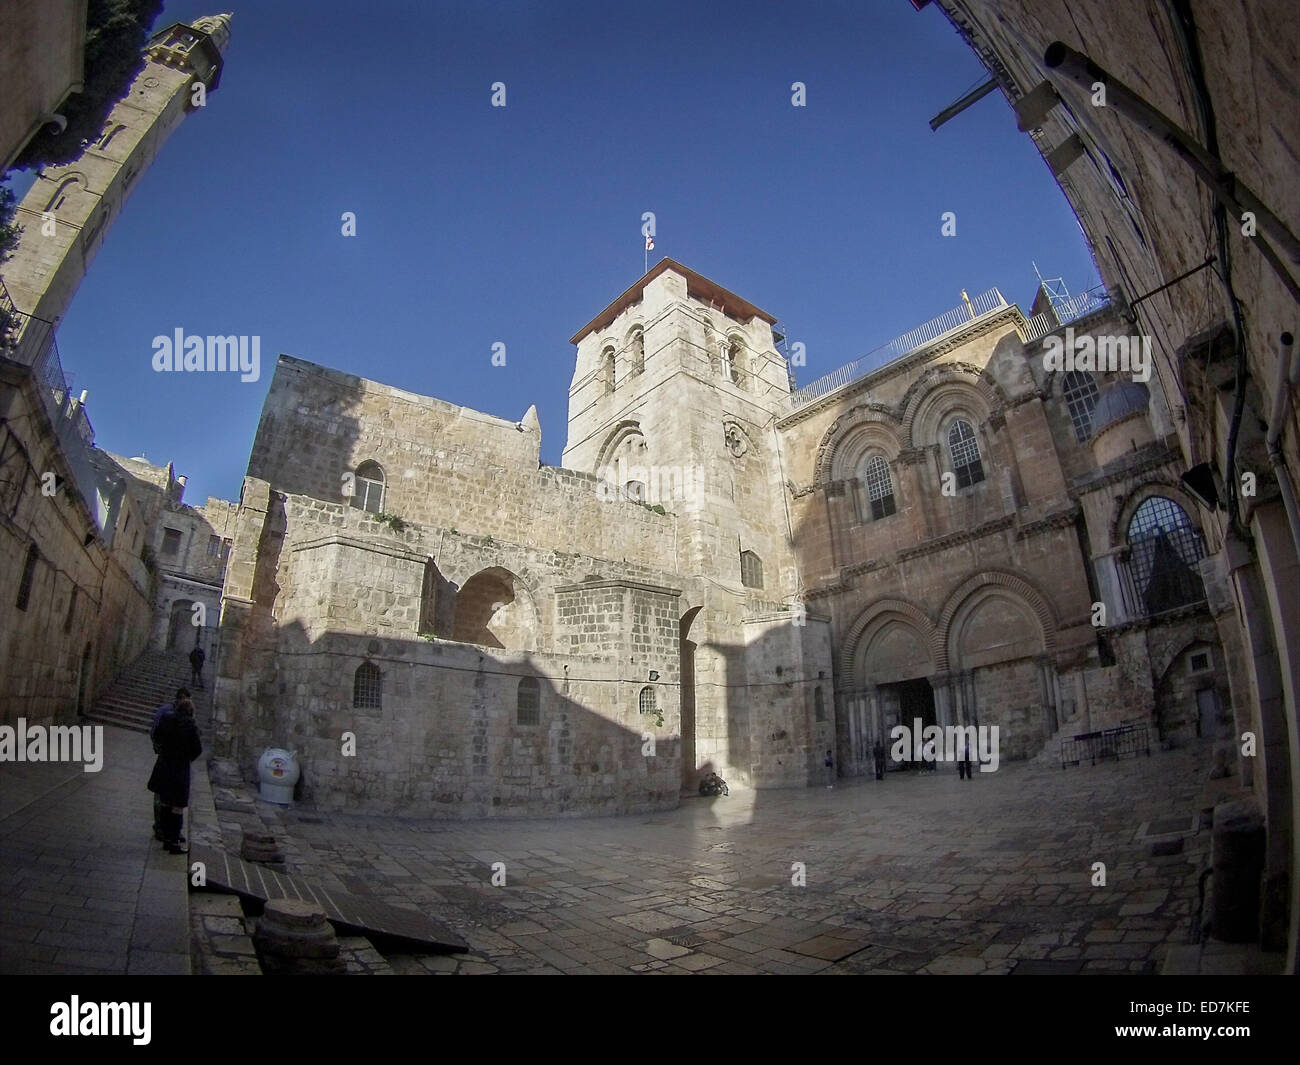 The Church of the Holy Sepulchre also called the Basilica of the Holy Sepulchre,Old City,Jerusalem. - Stock Image